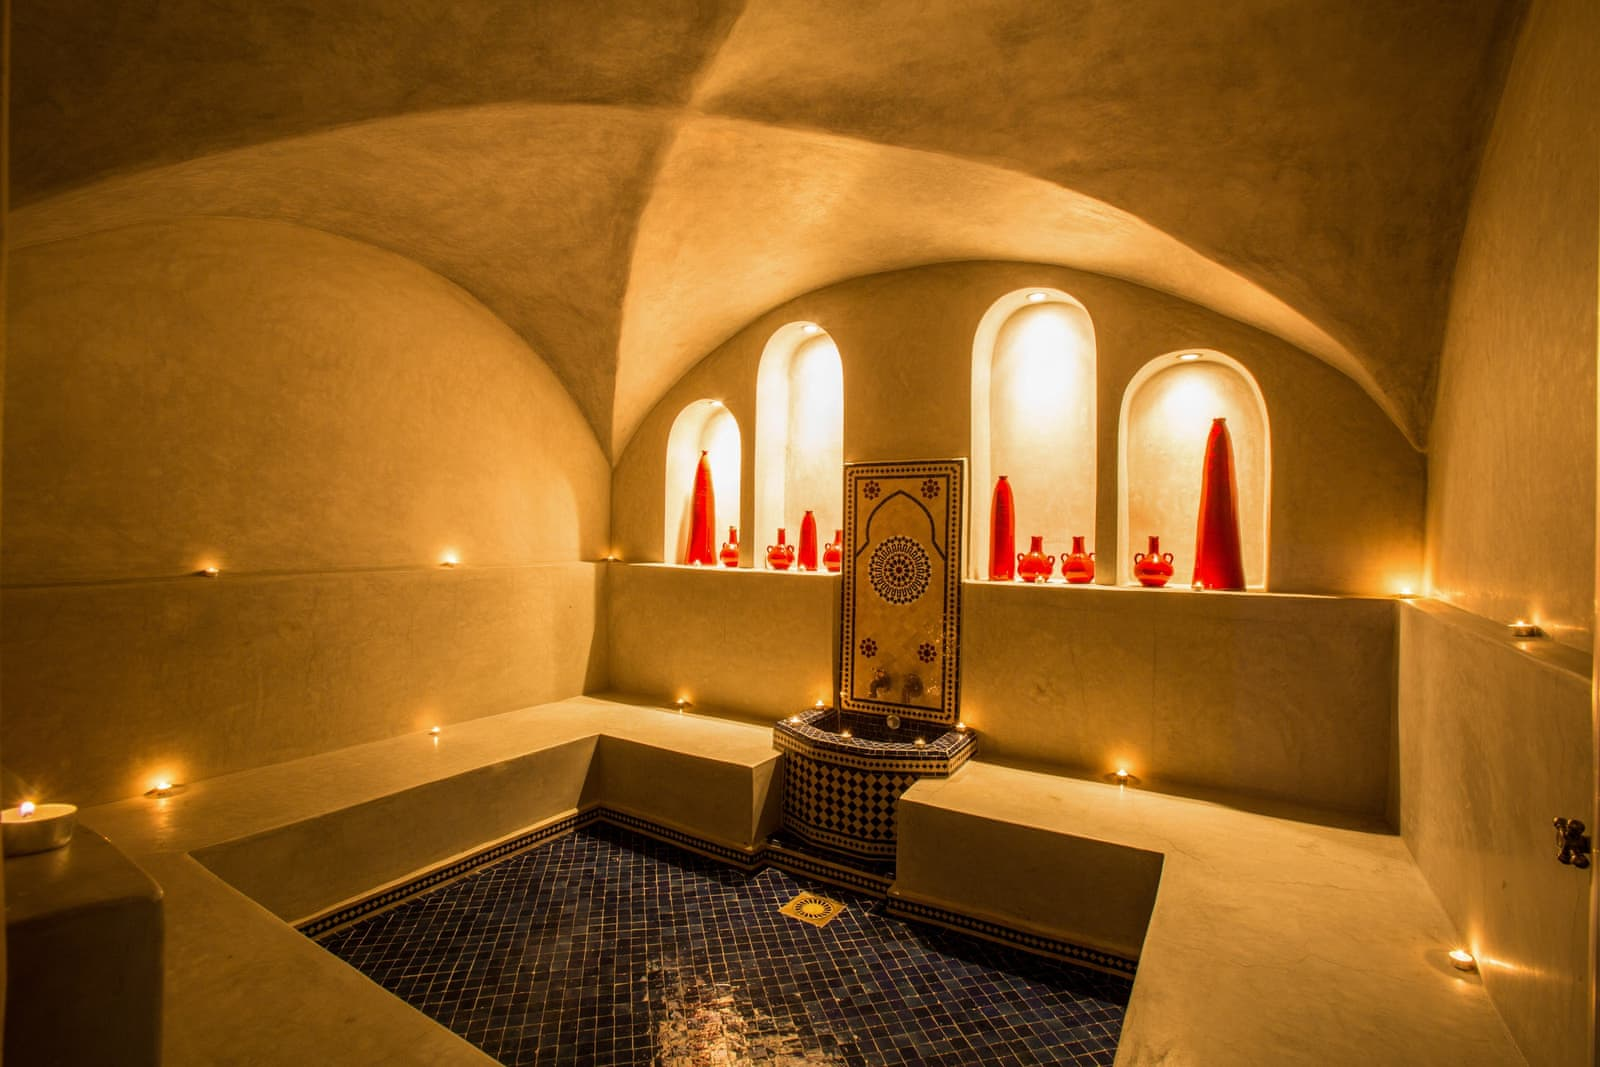 Some villas in Morocco offer private spa facilities